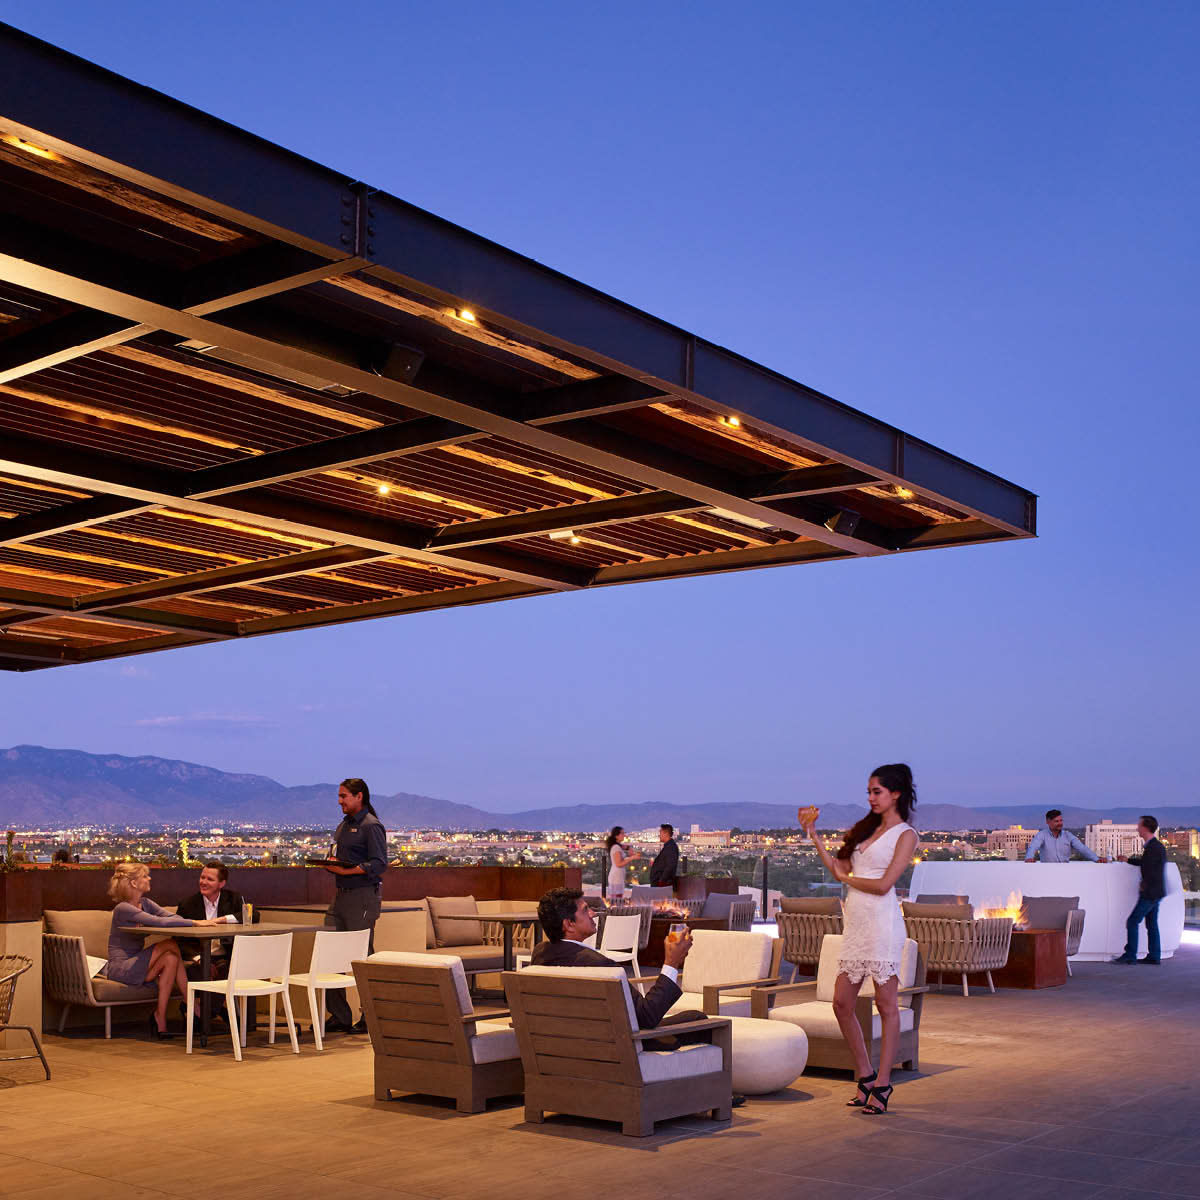 Level 5 Rooftop Restaurant & Lounge - Hotel Chaco